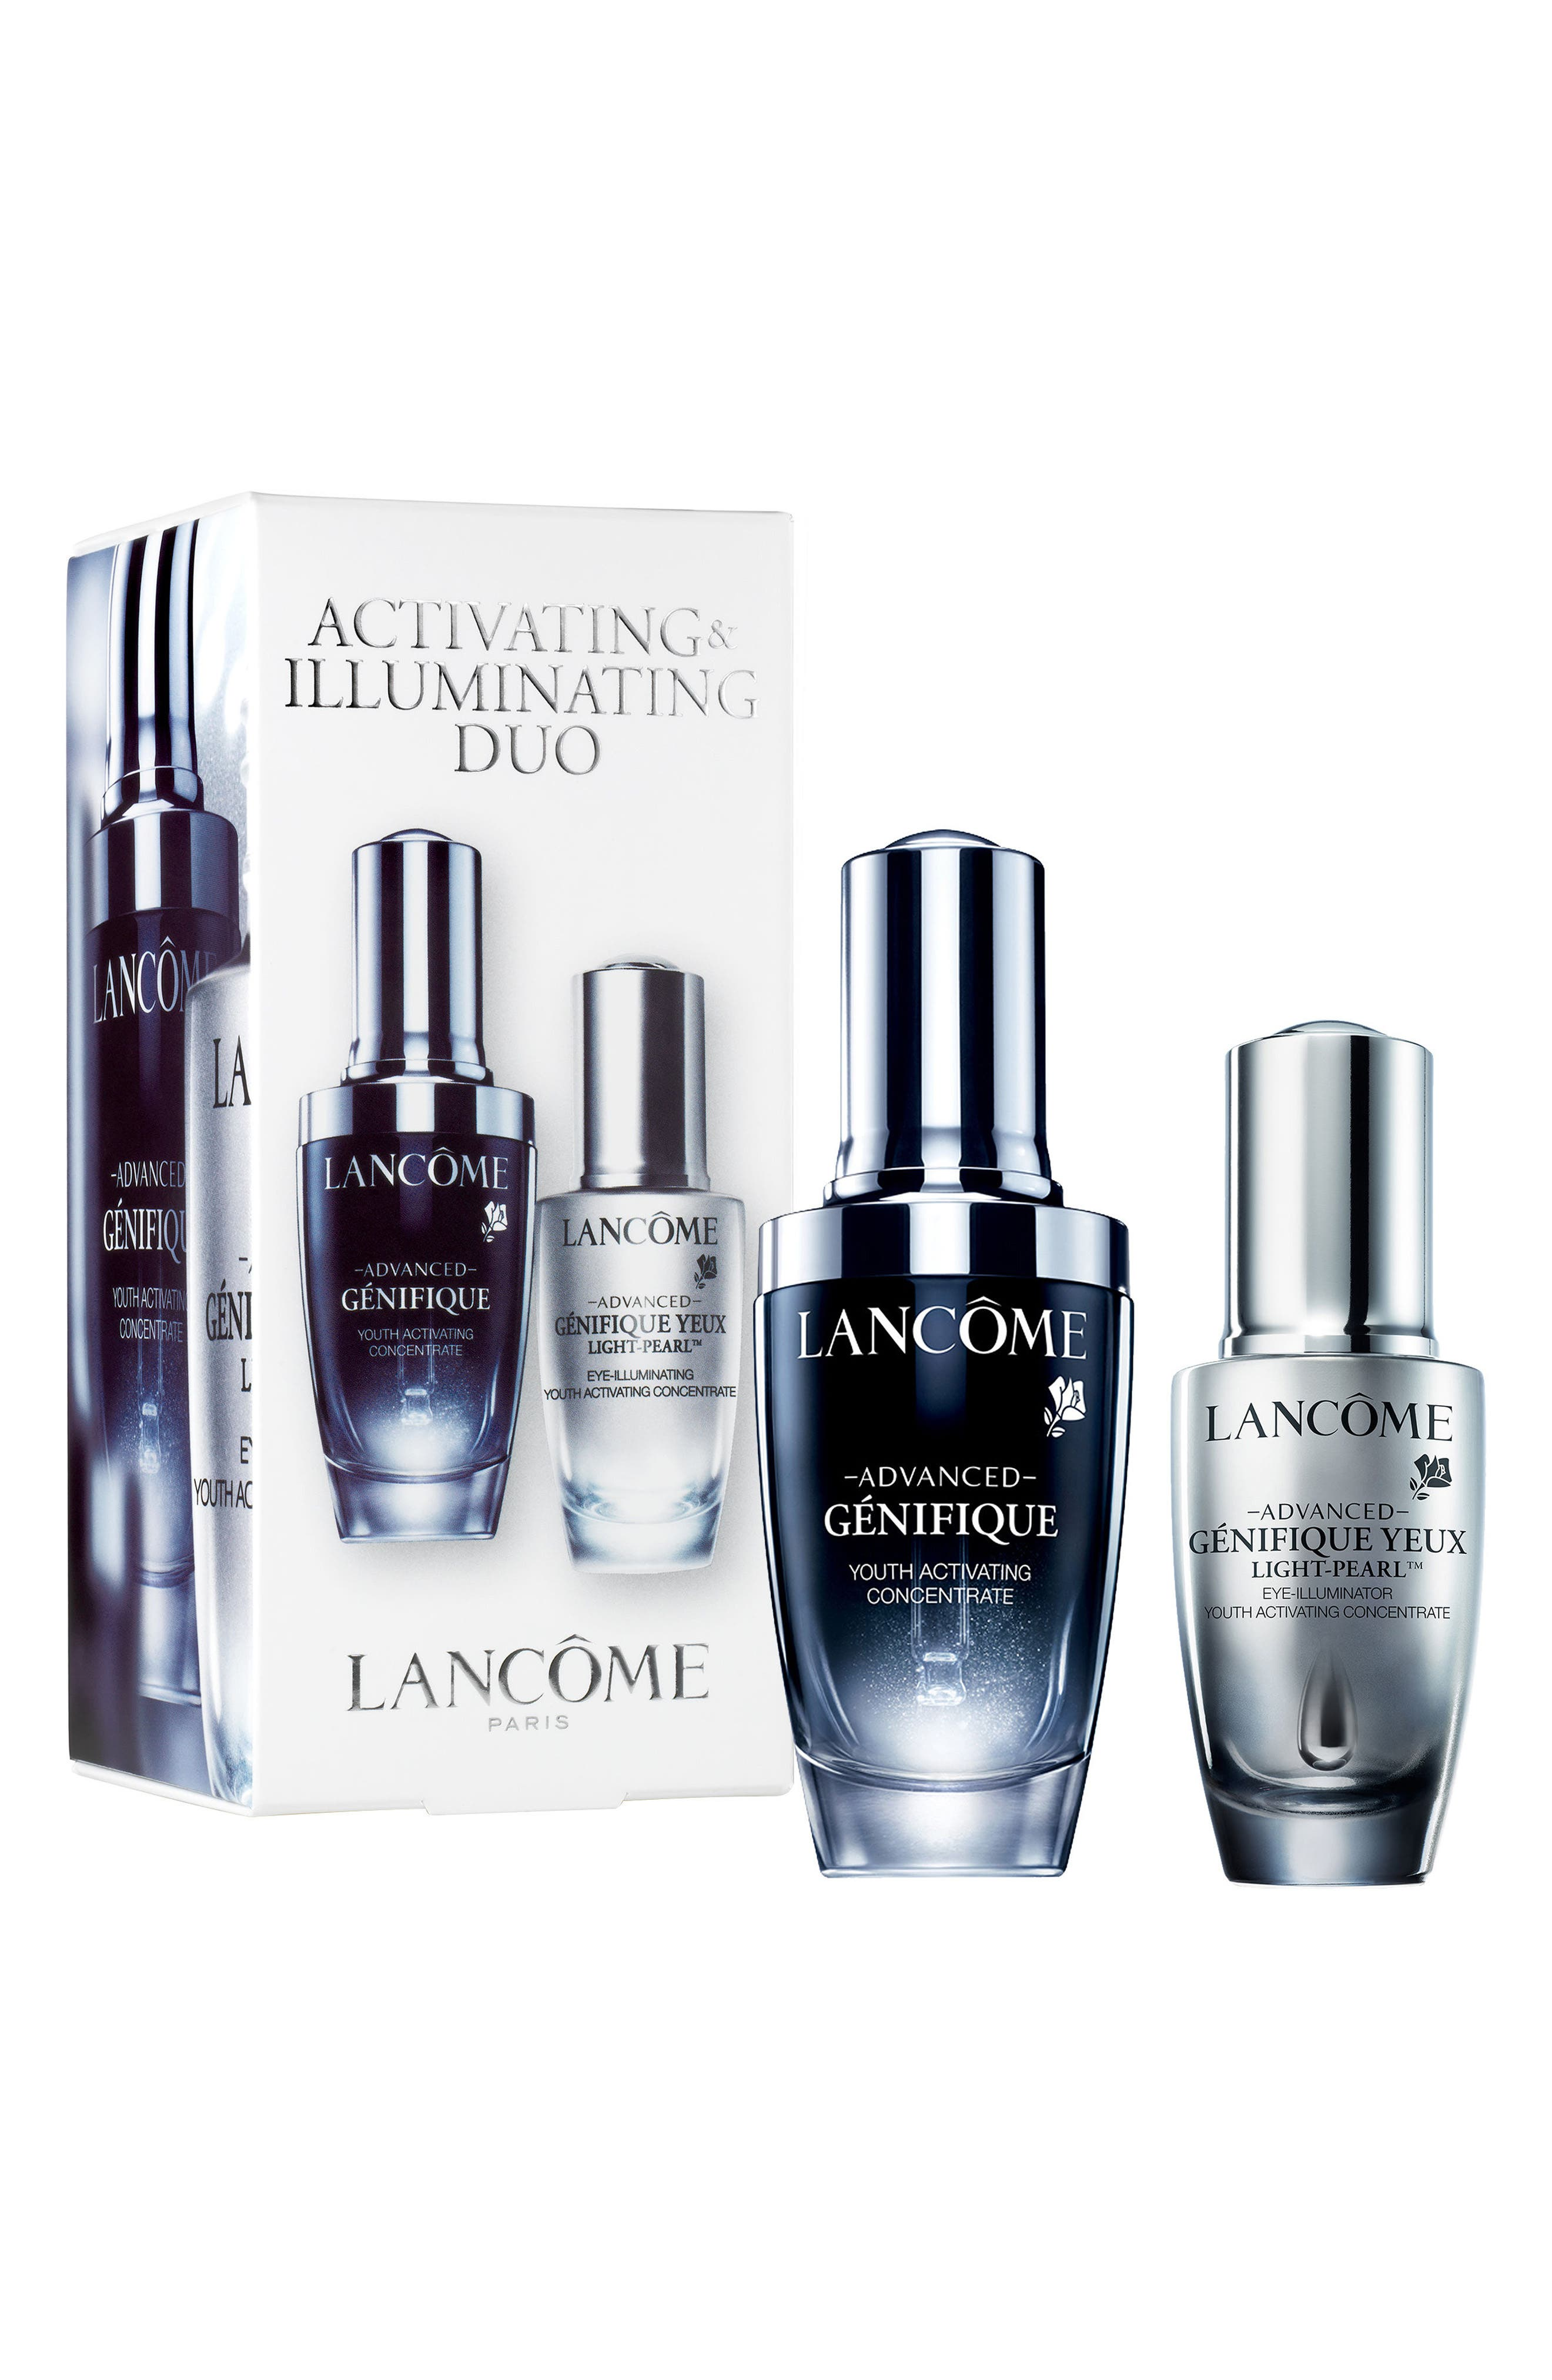 Lancôme Advanced Génifique Activating & Illuminating Duo ($147 Value)